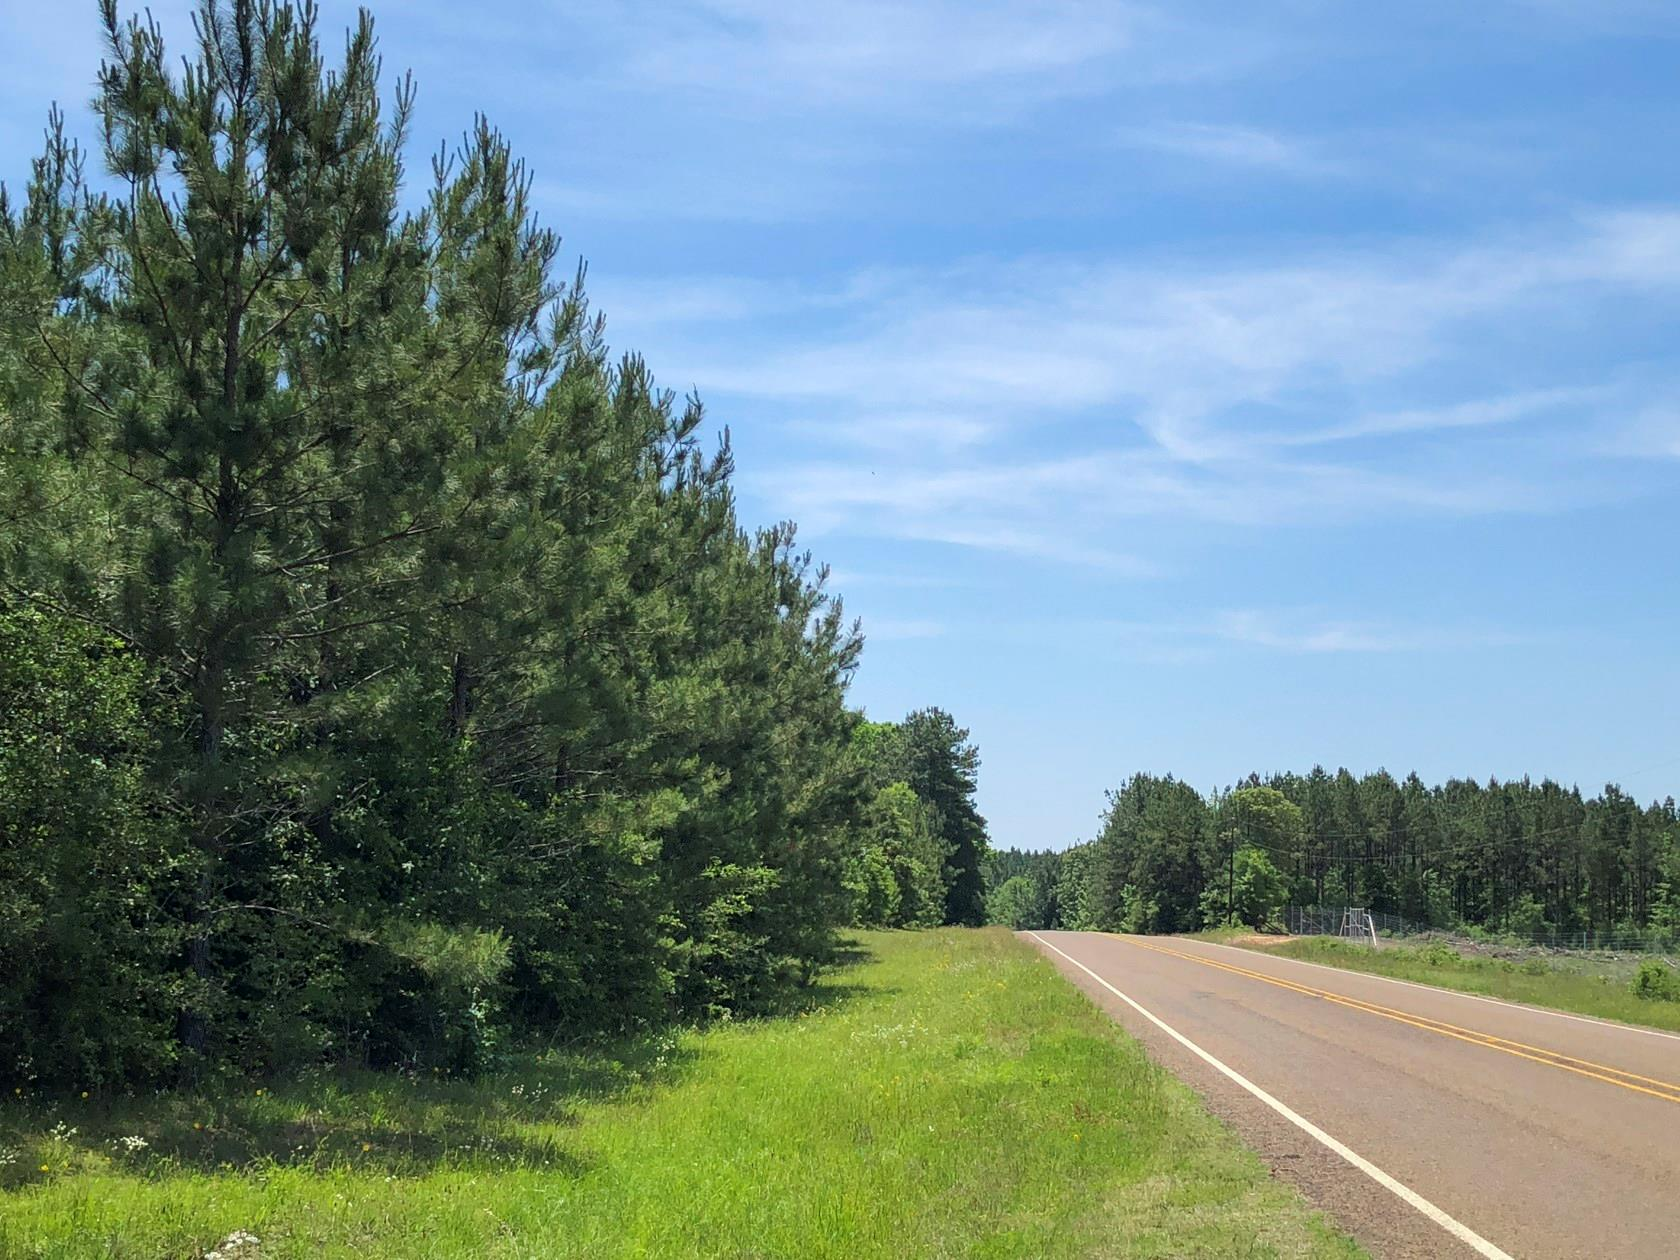 000000 SH 63 Property Photo - Burkeville, TX real estate listing